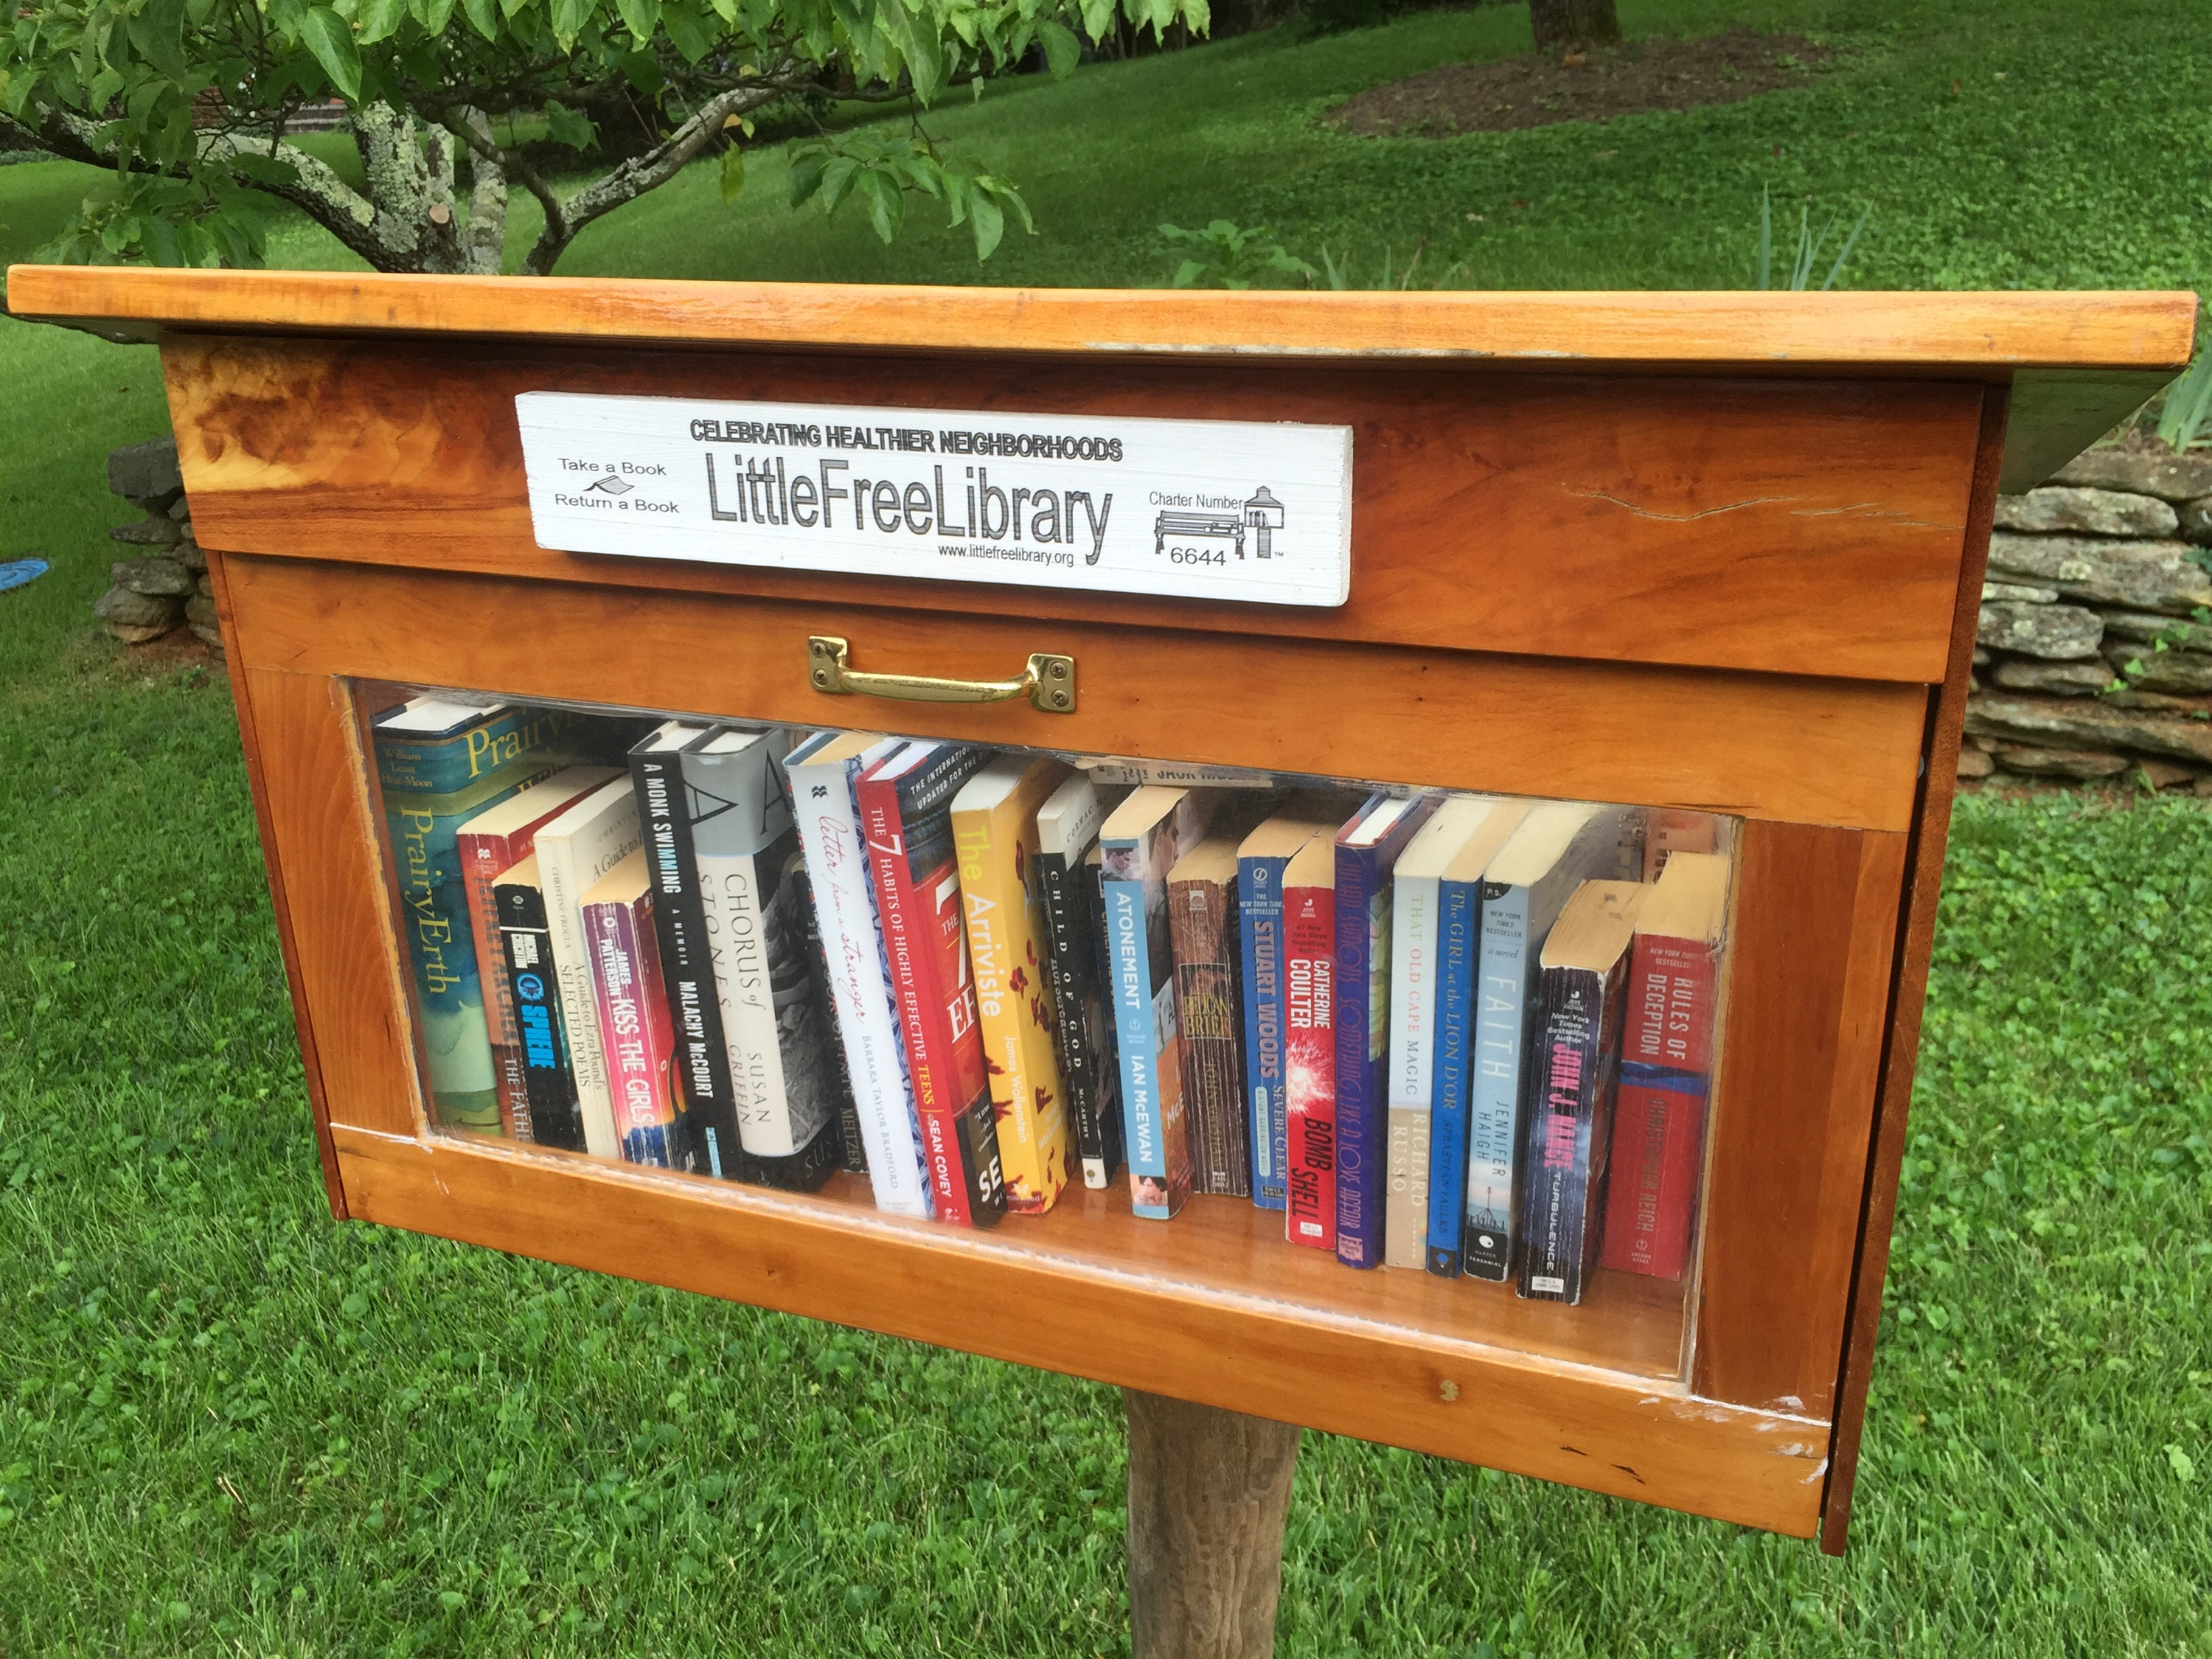 LittleFreeLibrary.org